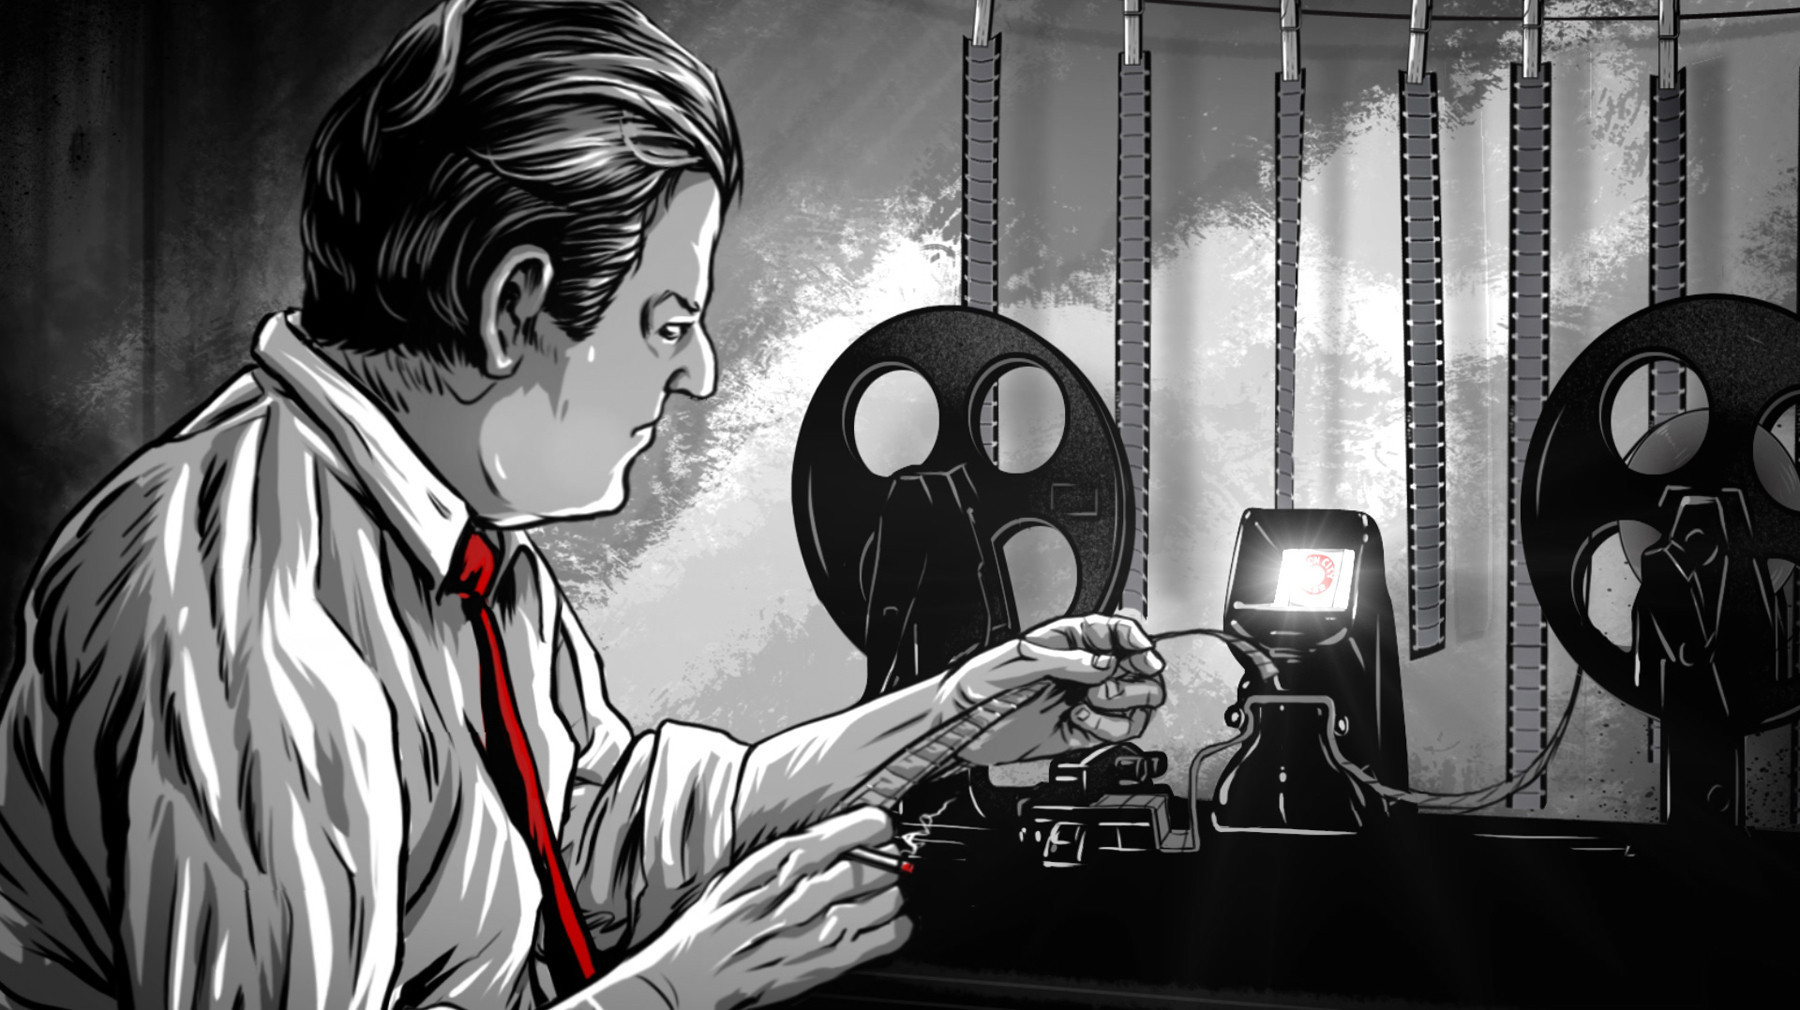 analyzing the shining and night of the living dead If you would like to know what a particular dream means and to be able to interpret it better, check out our dictionary of dreams each topic has meanings, like snakes, babies, being pregnant, etc find out more in our dictionary of dreams.